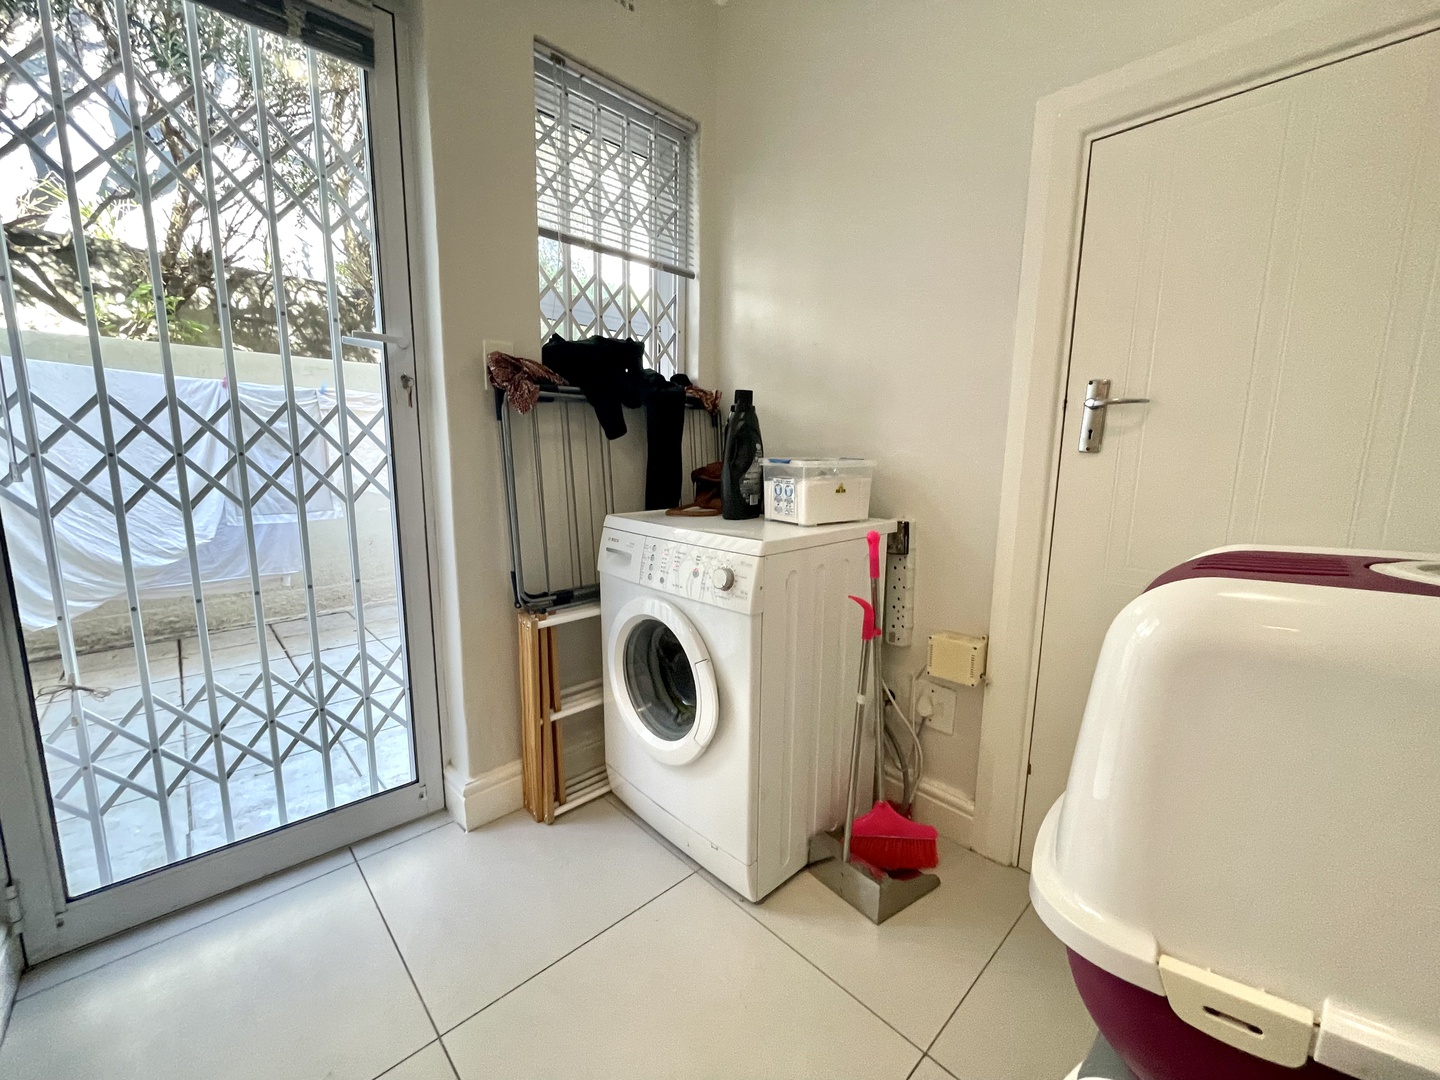 Apartment in Vredehoek - laundry and storage